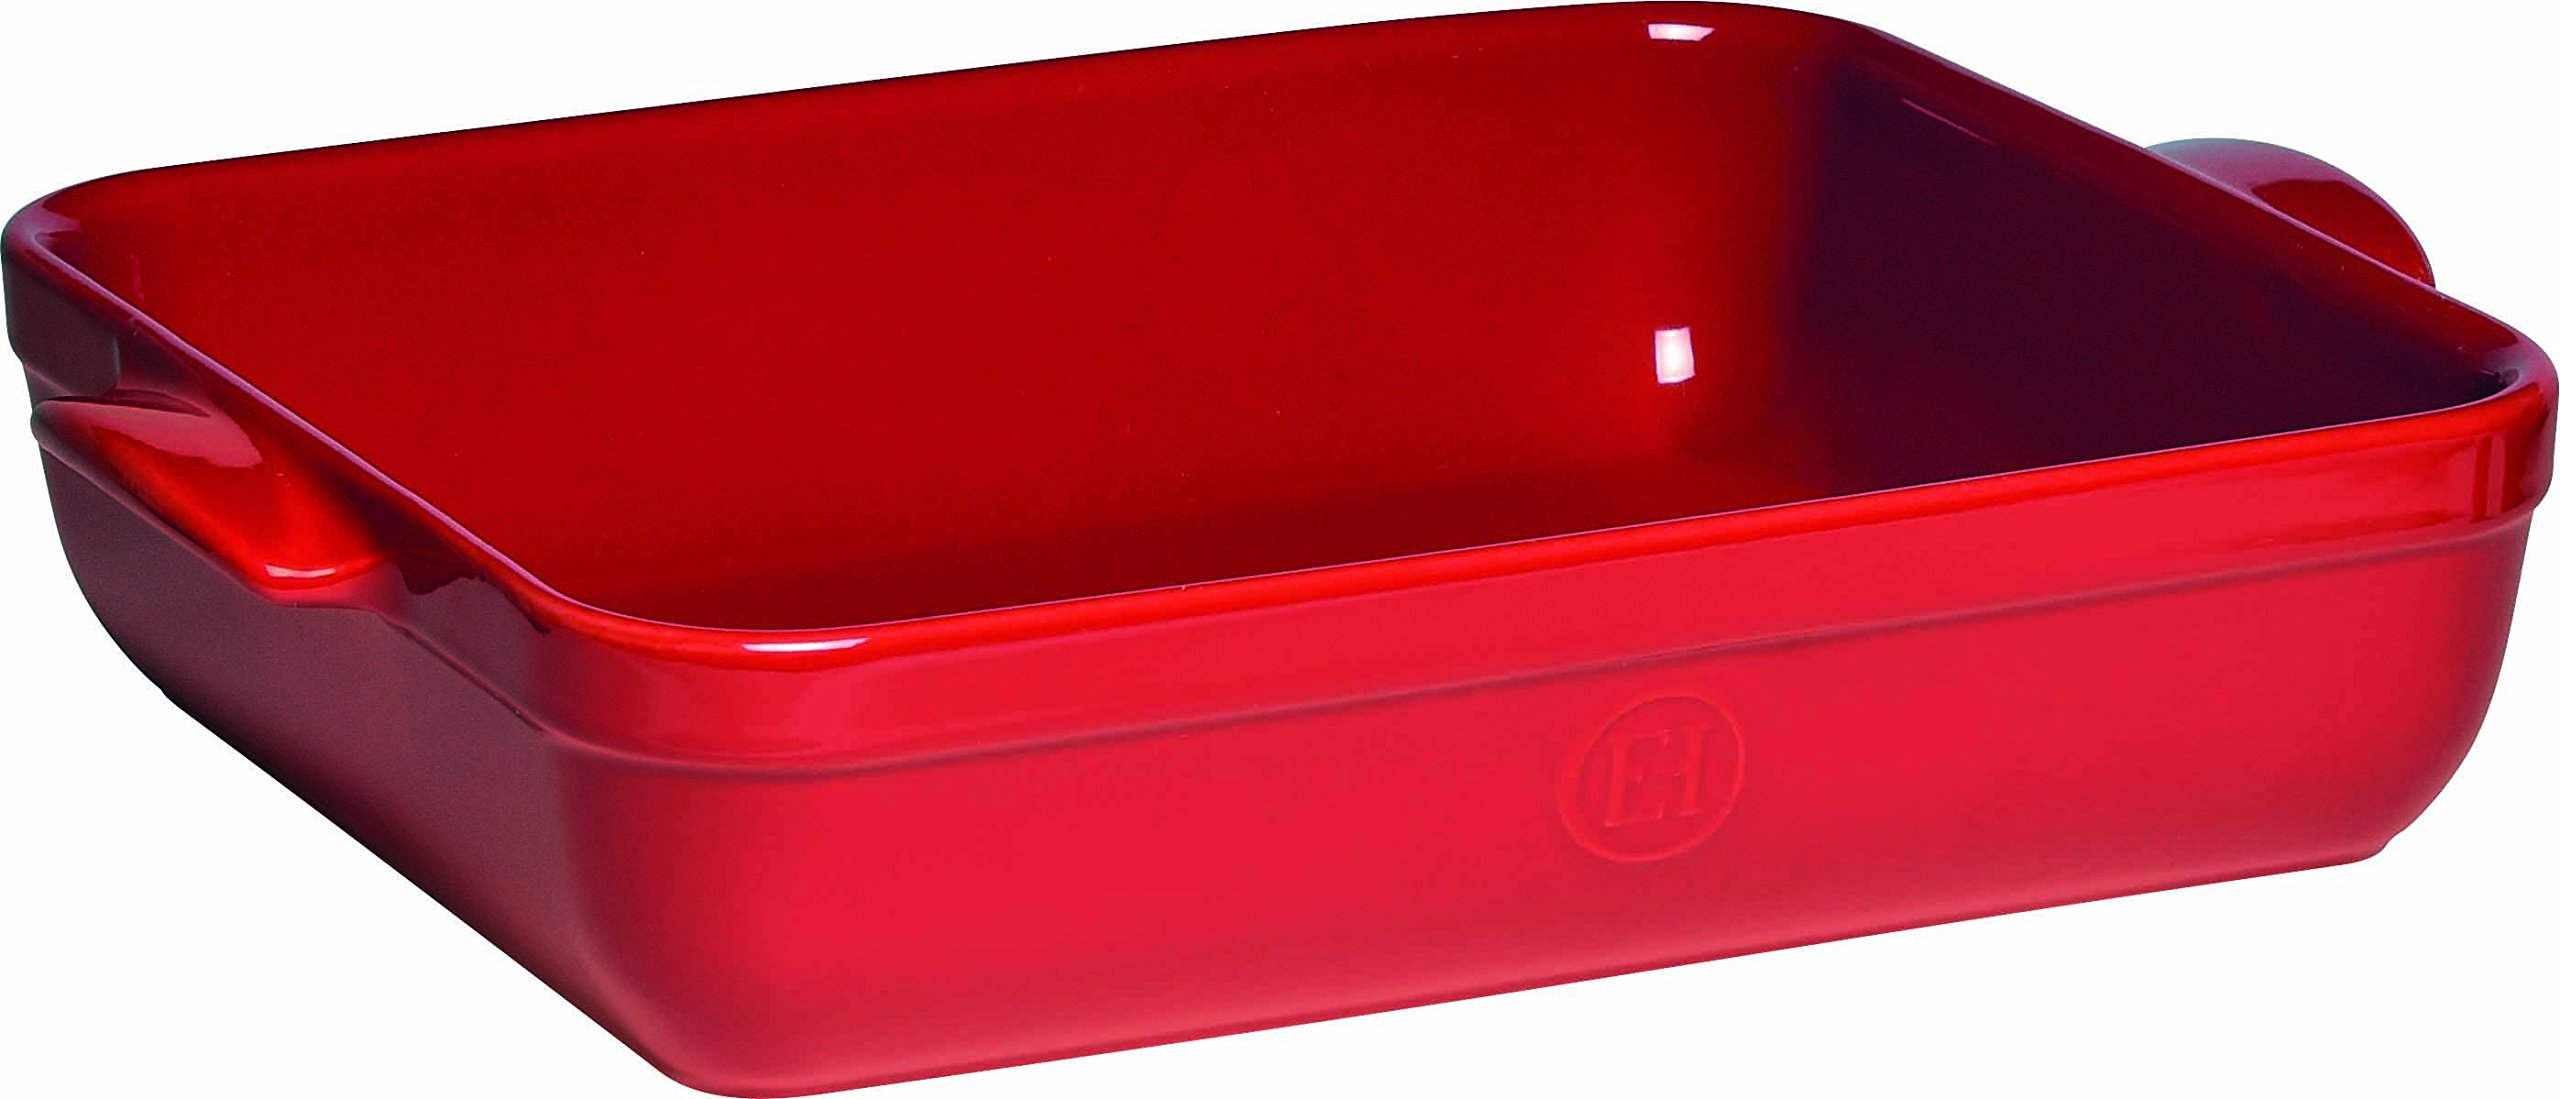 Emile Henry Made In France Lasagna/Roasting Dish 16.75'' x 11''x 3'' Burgundy Red